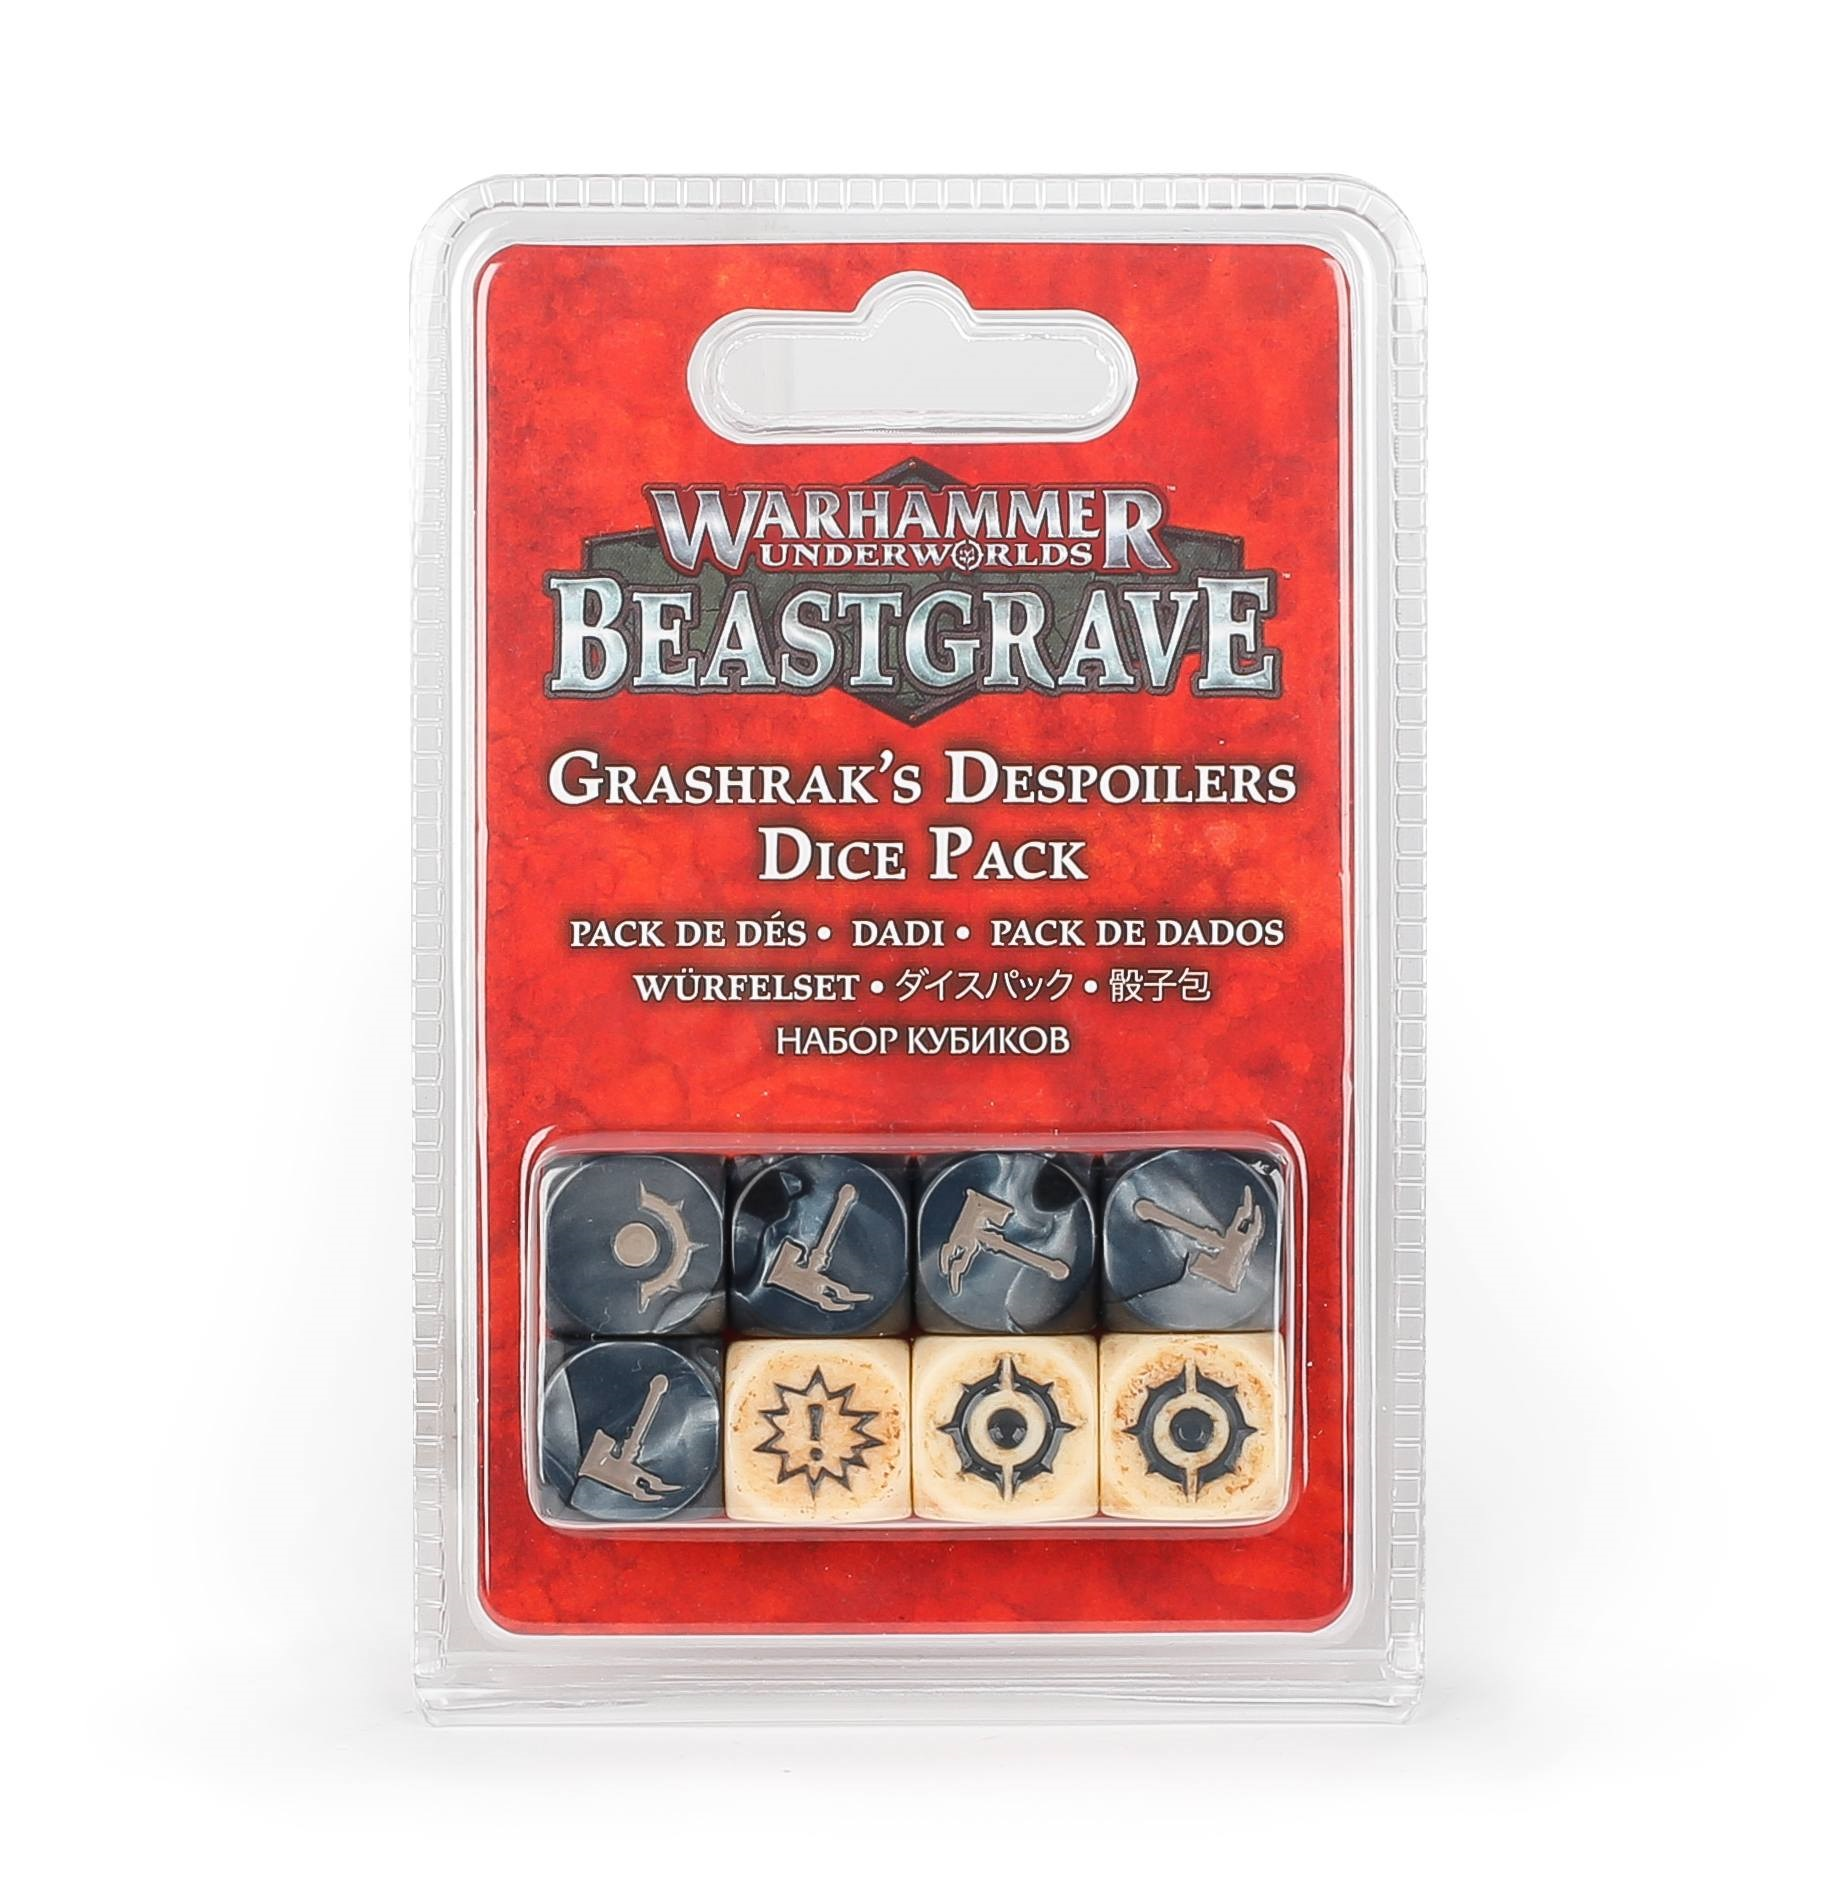 Grashraks Despoilers Dice Pack